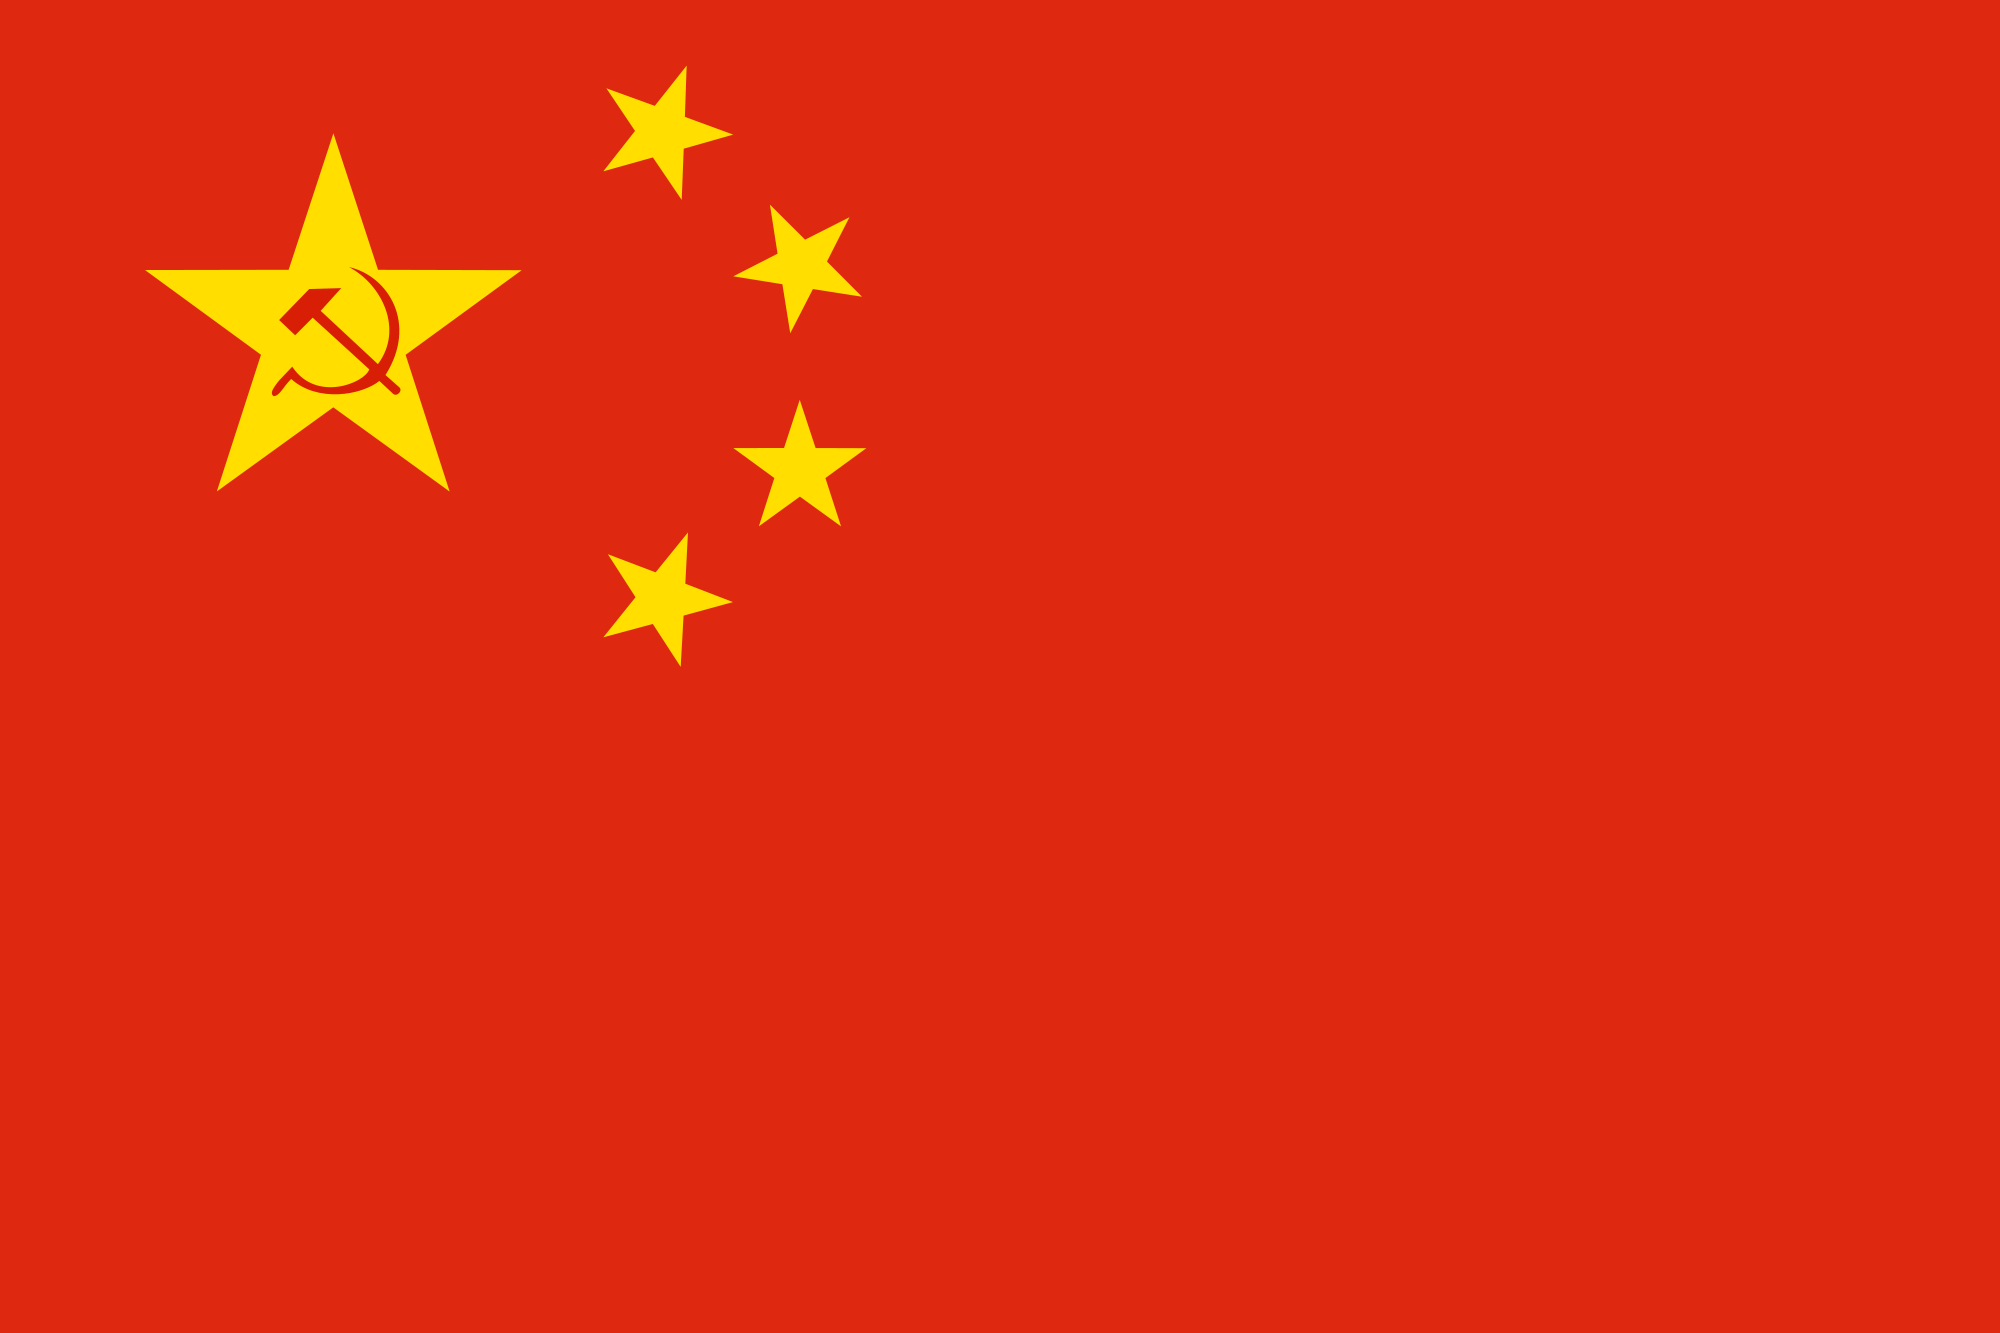 2000x1333 > Flag Of China Wallpapers